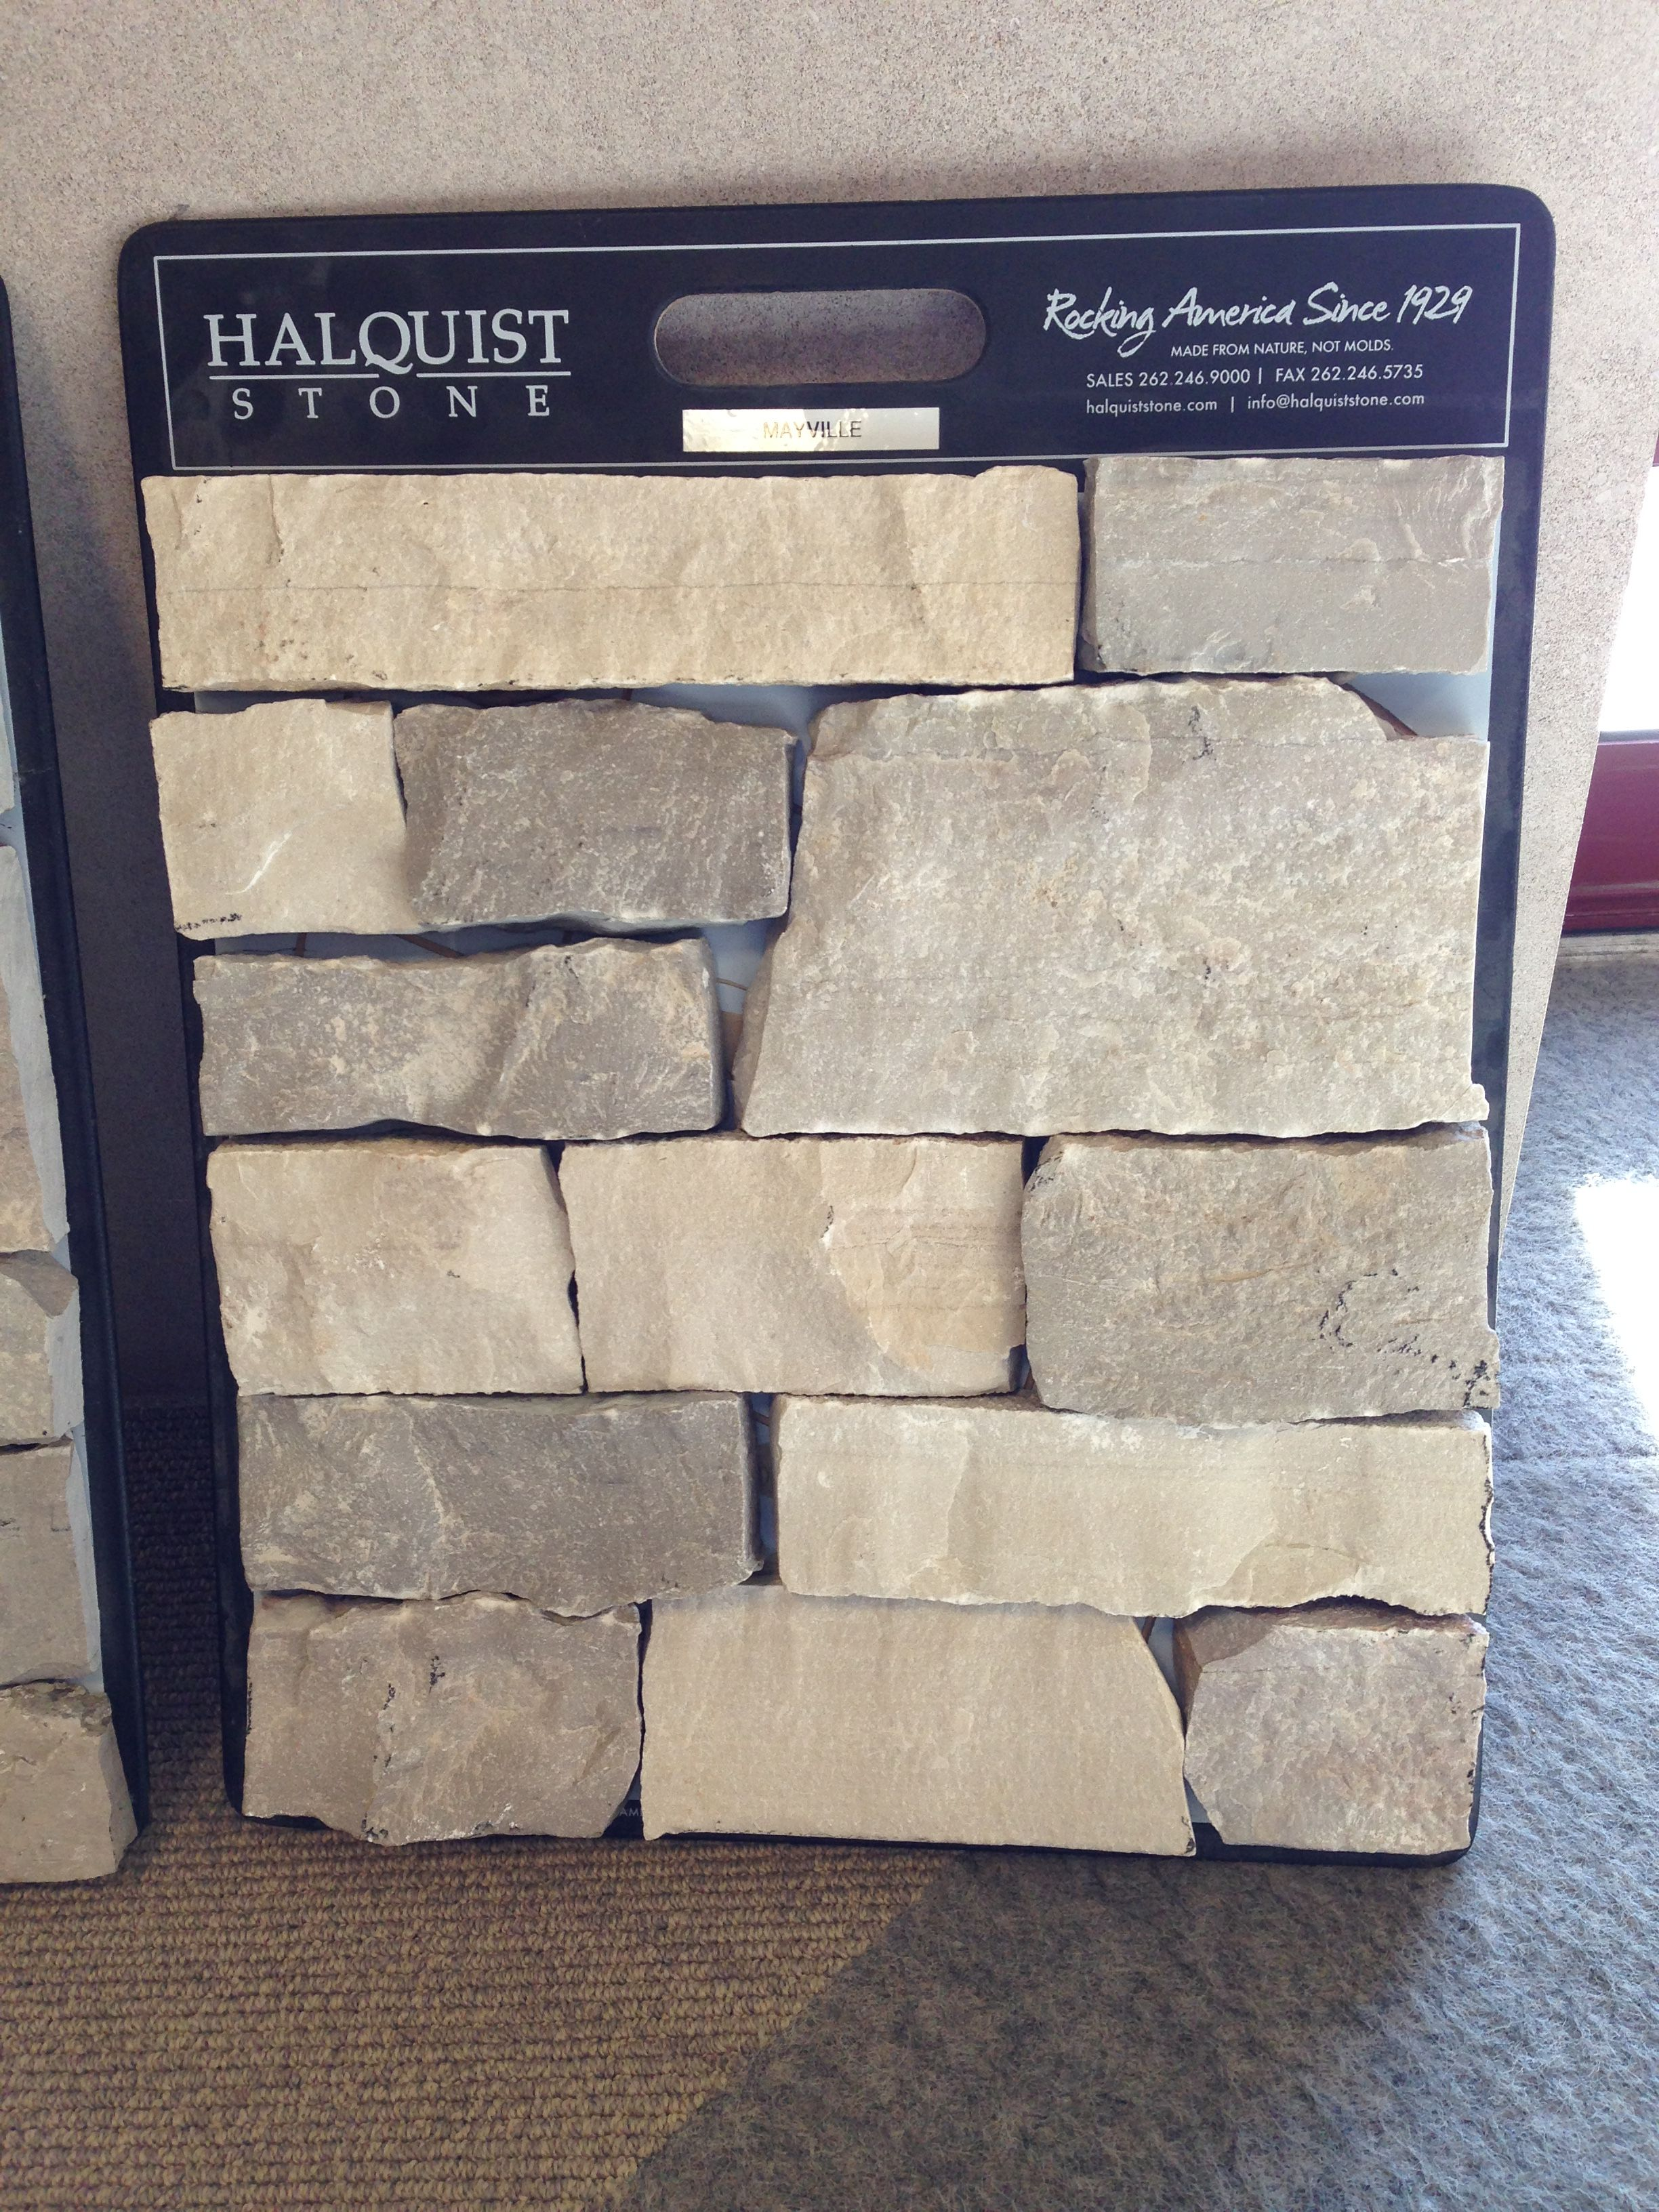 Pin By Heather Jaggers Sommer On Basement Ideas Molding Stone Coffee Bag